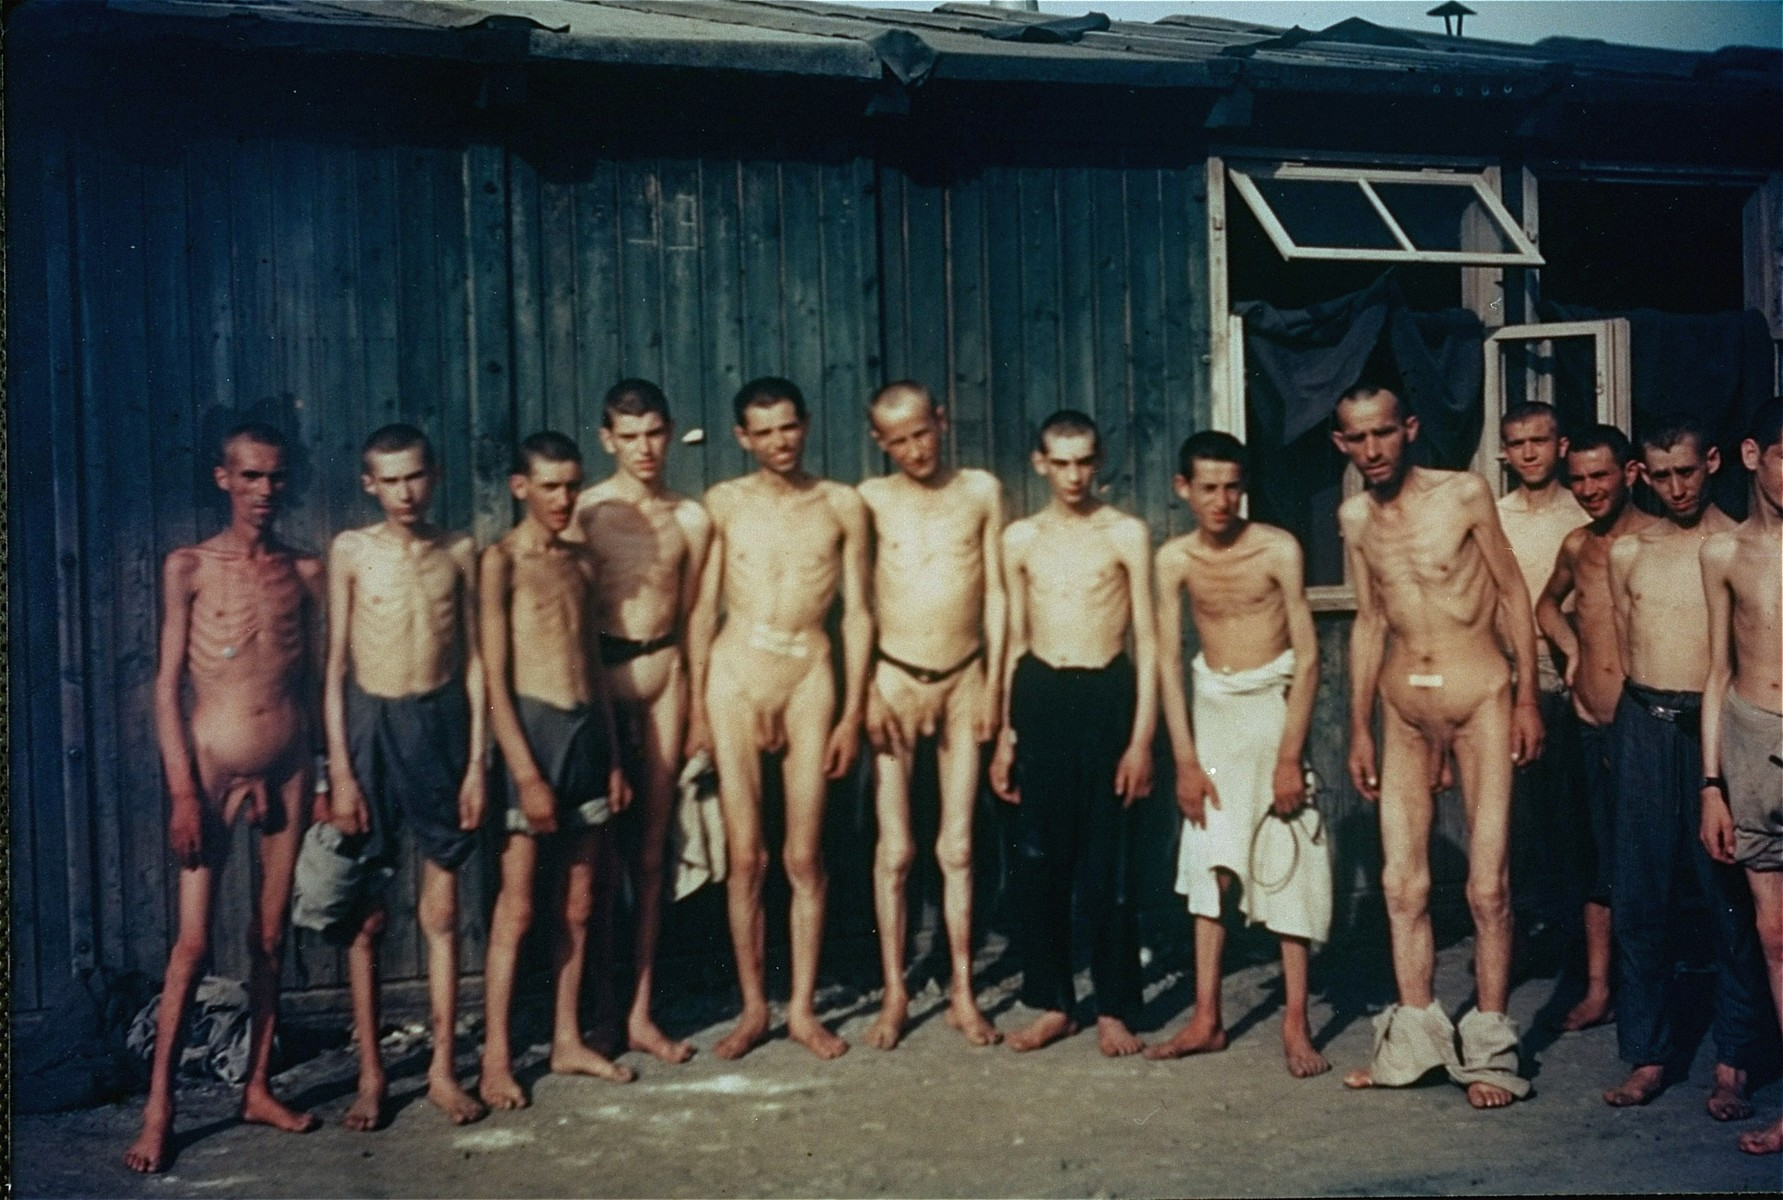 Group portrait of naked survivors in the Mauthausen concentration camp.